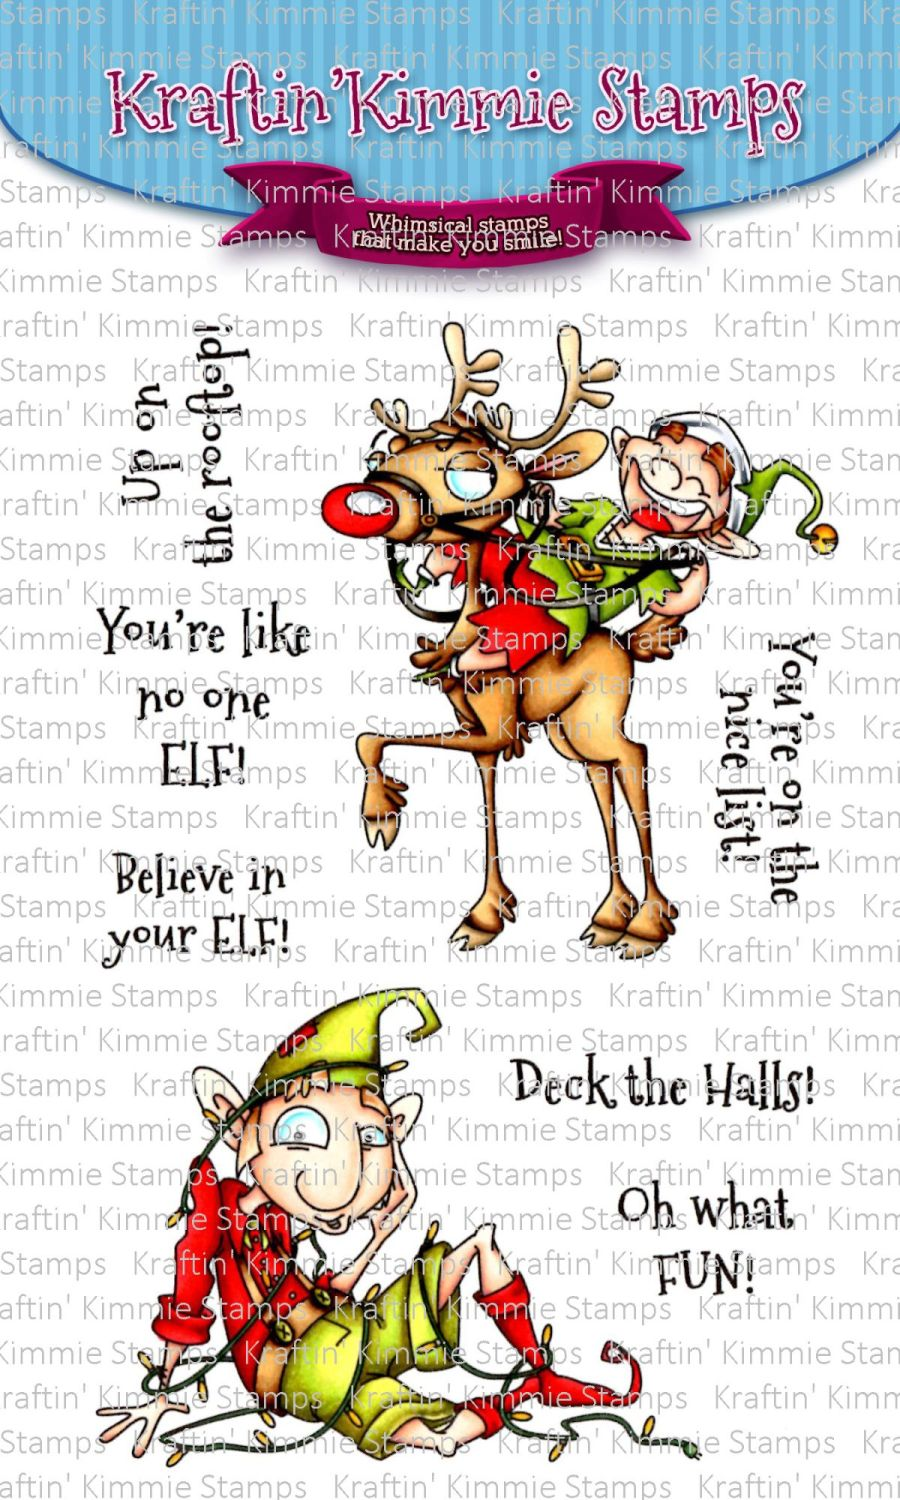 ***NEW*** Kraftin' Kimmie - Believe in Your ELF! clear stamp set